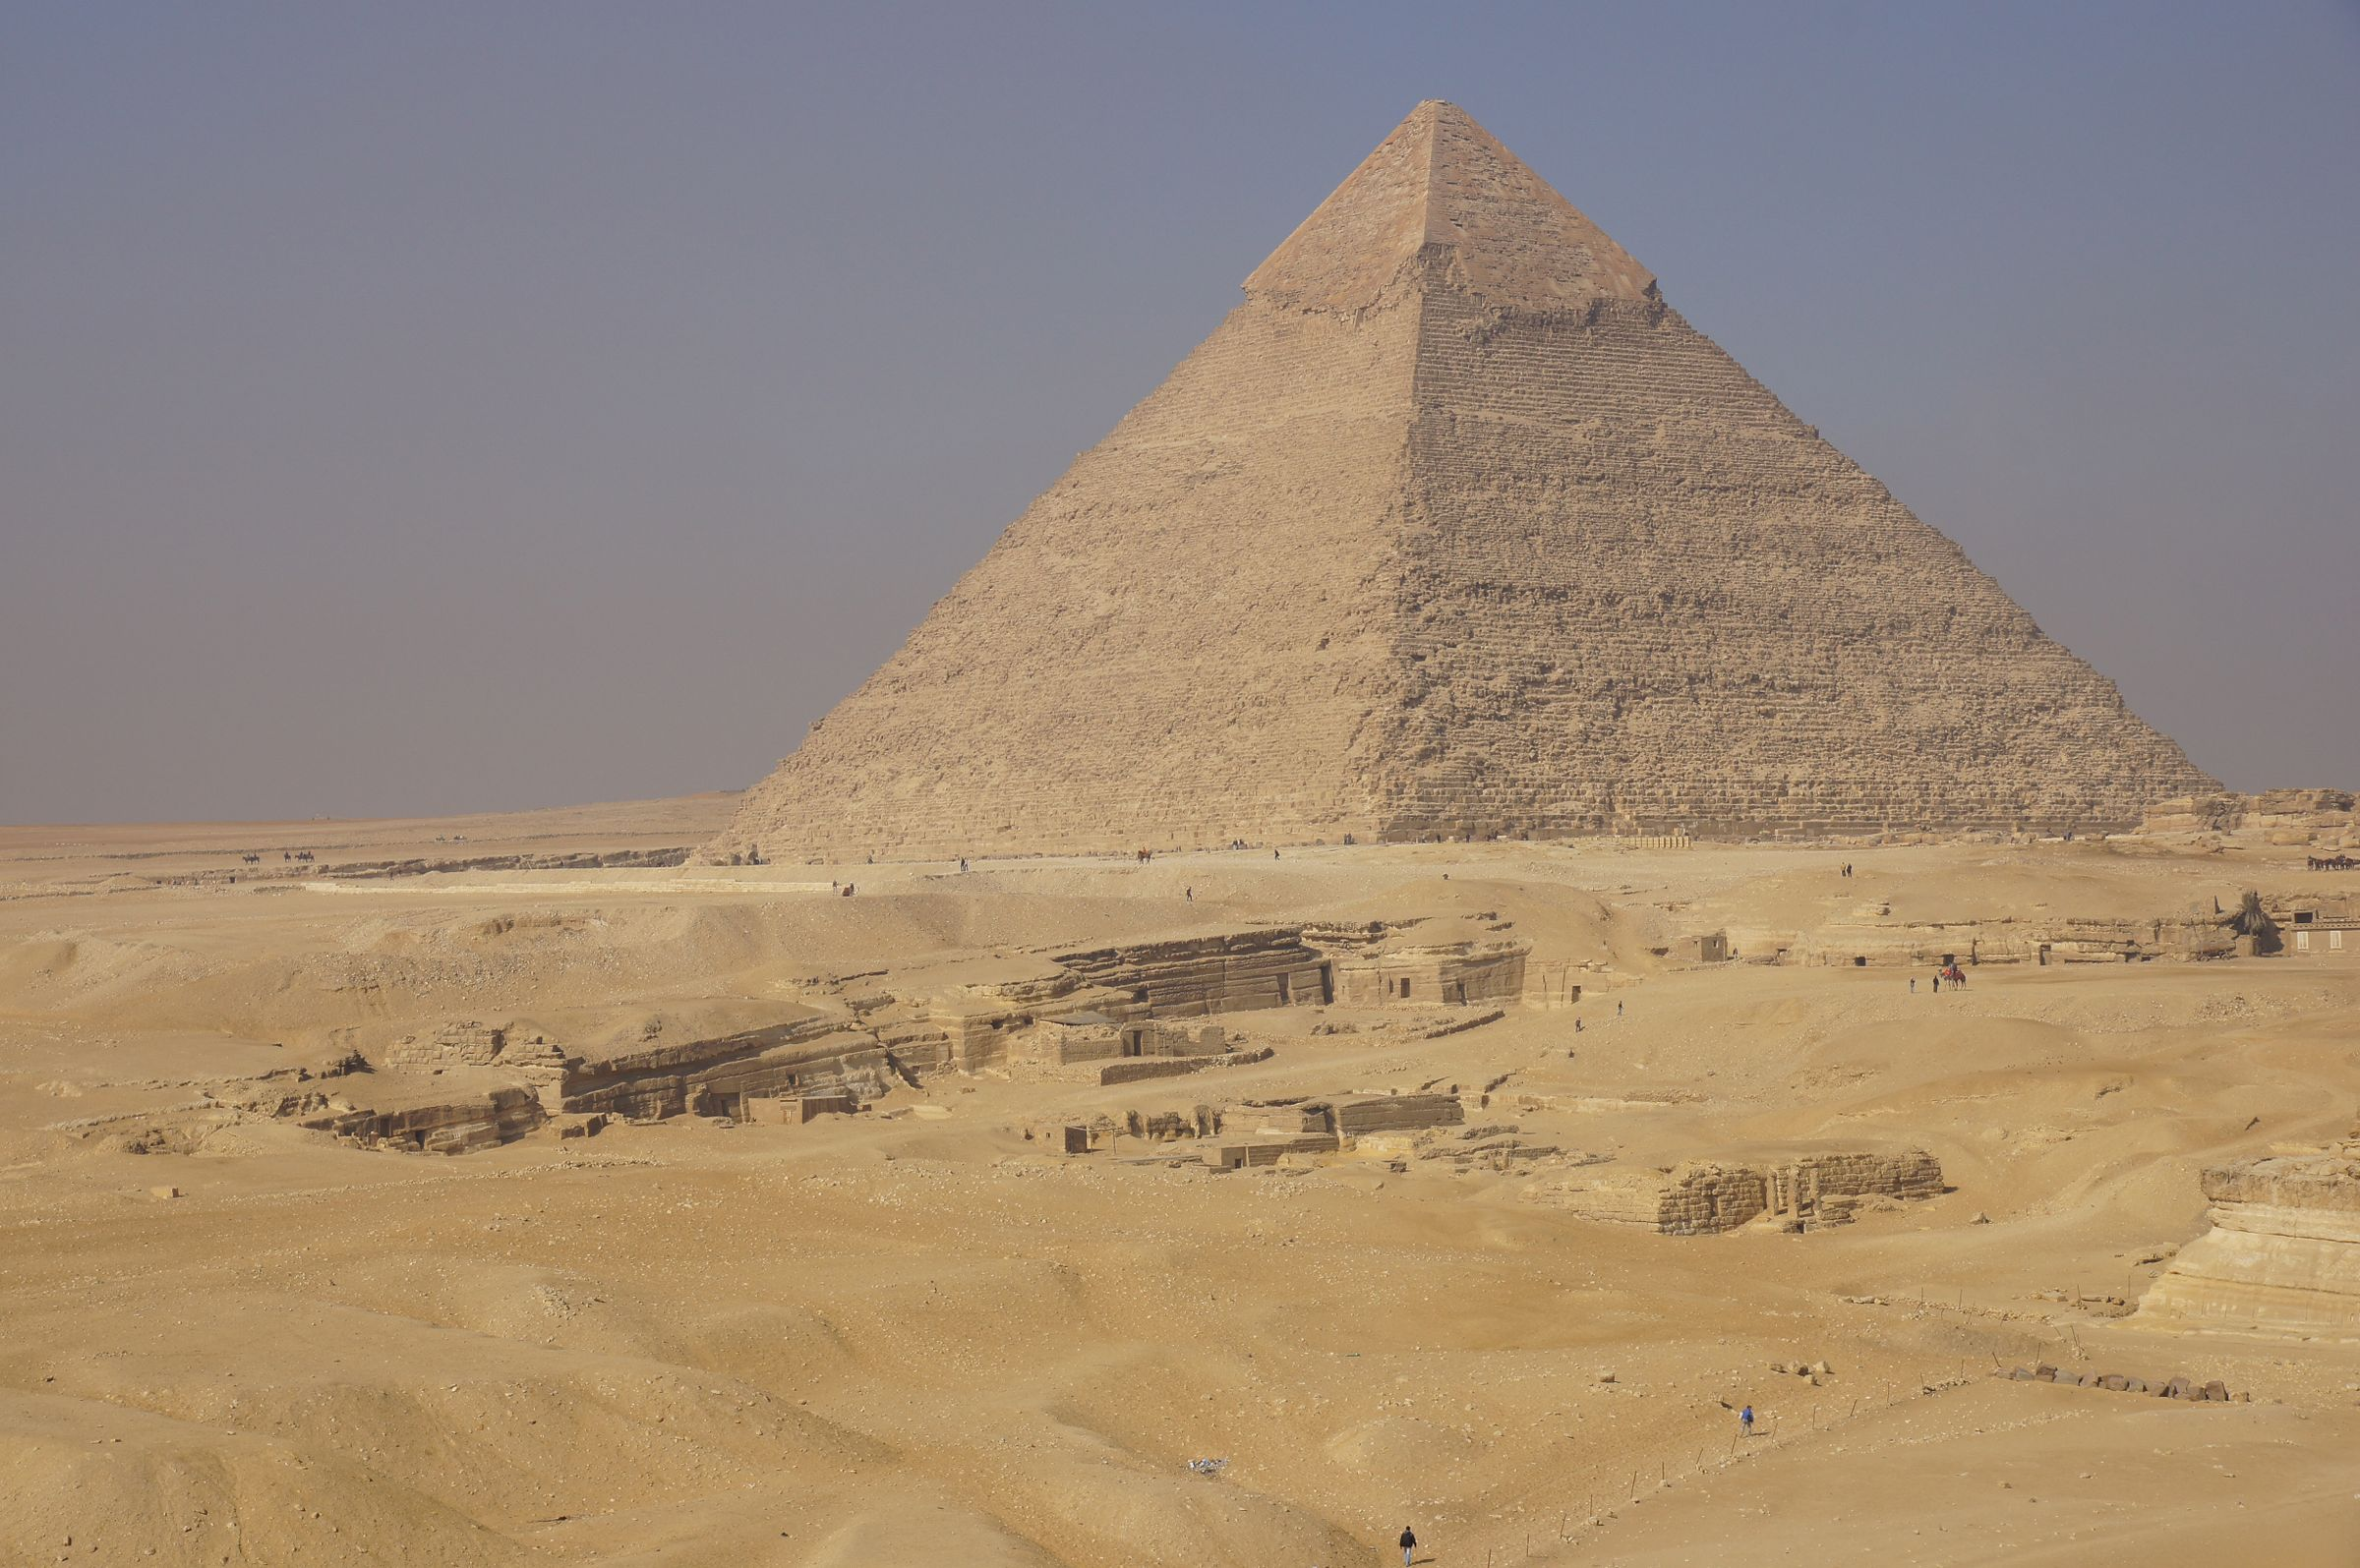 Central Field (Hassan): Site: Giza; View: G 8020, G 8024, G 8026, G 8028, G 8056, G 8064, G 8070, G 8066, G 8090, G 8126, G 8130, G 8250, G 8260, G 8240(?), G 8270(?), G 8310, G 8400